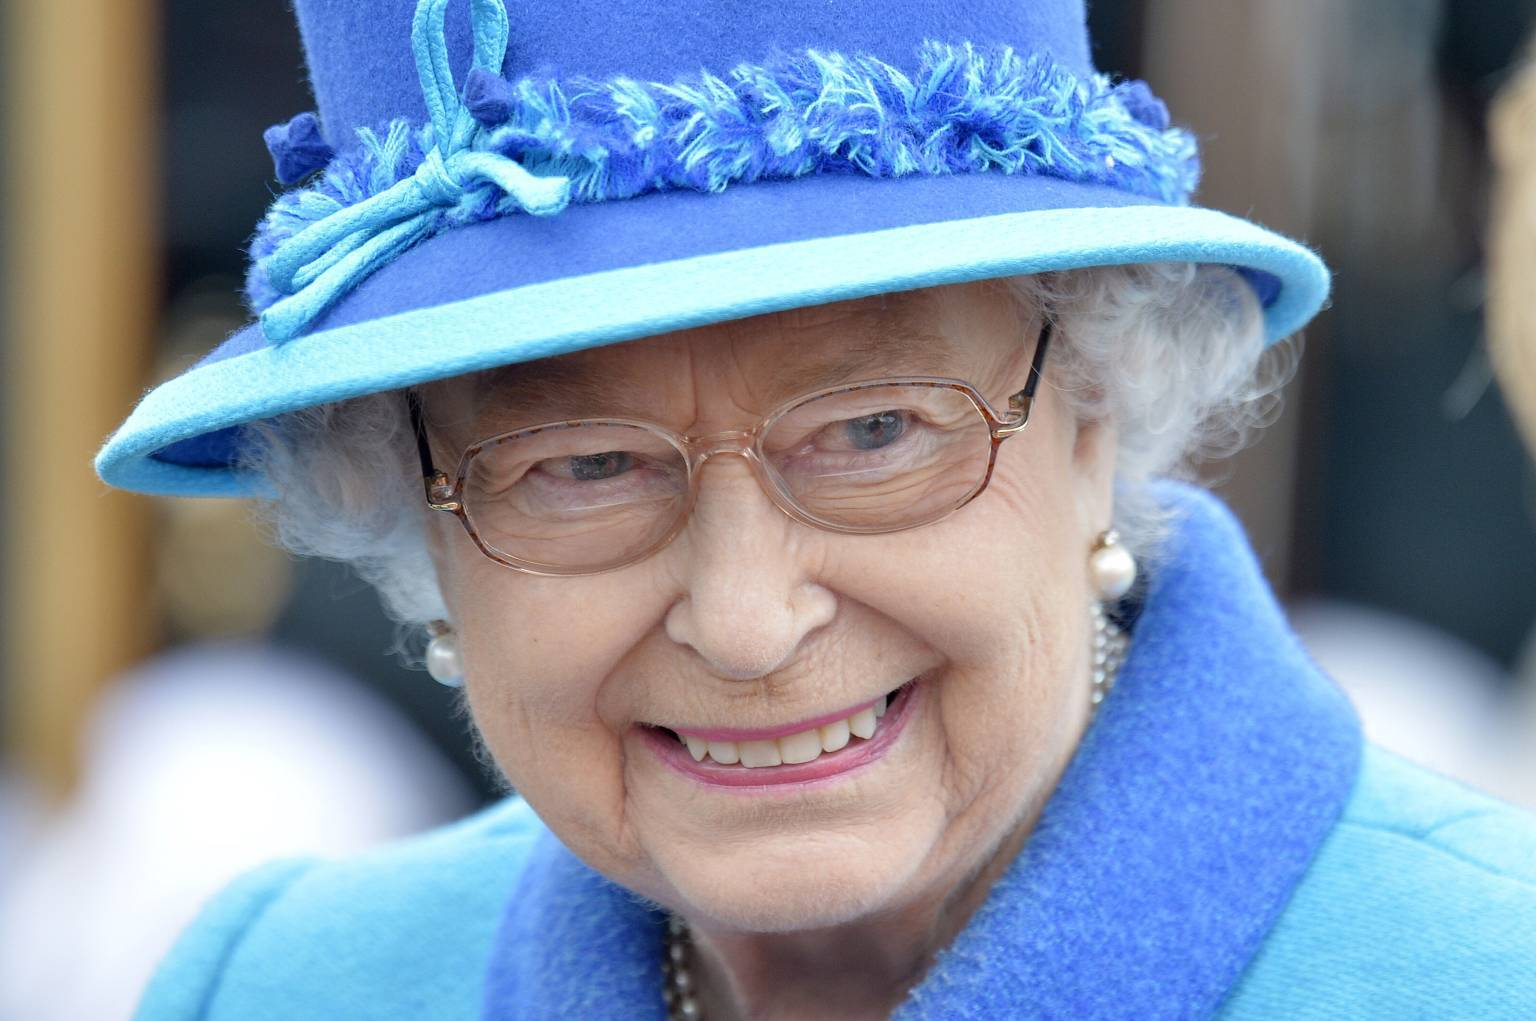 Queen Elizabeth II smiles as she arrives at Tweedbank, on the day she becomes Britain's longest reigning monarch.